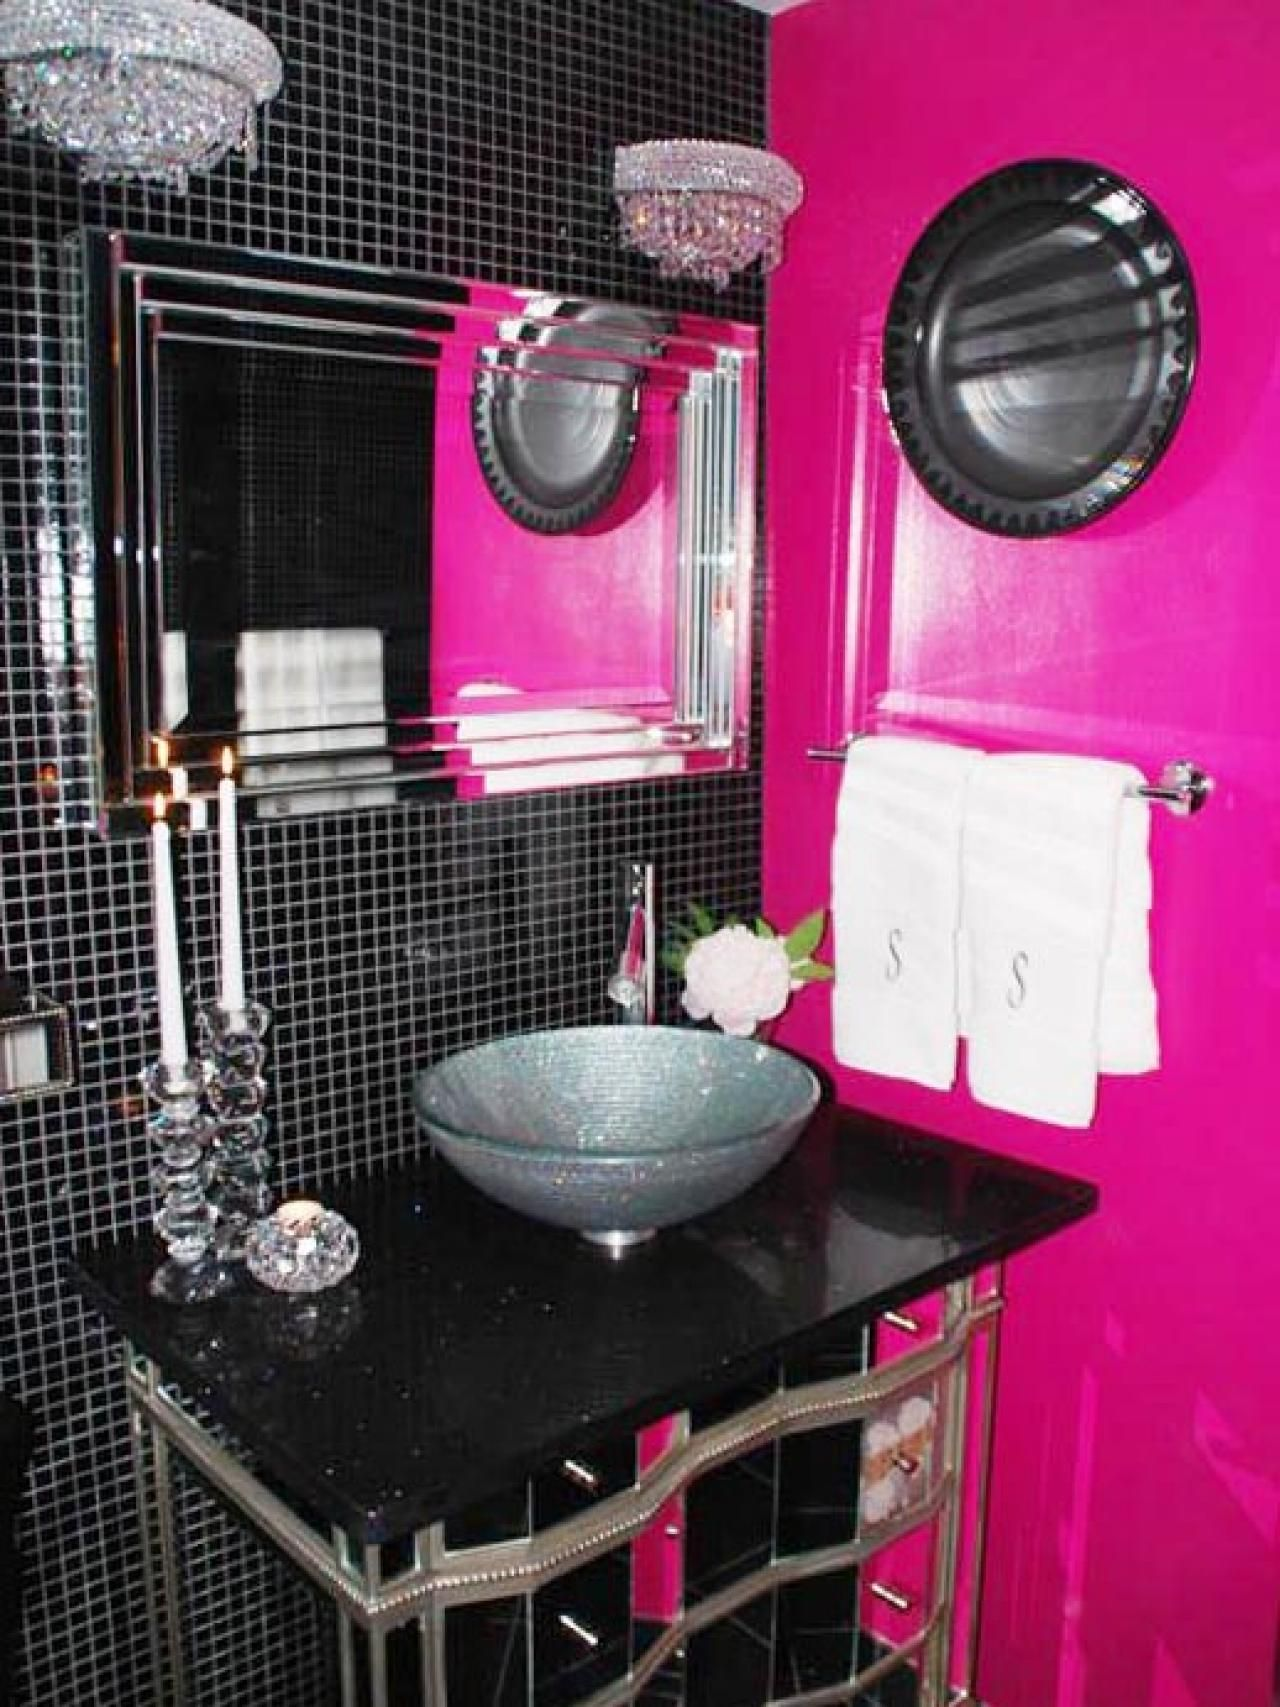 Colorful Bathrooms From Hgtv Fans Hot Pink Bathrooms Eclectic Bathroom Design Bathroom Colors